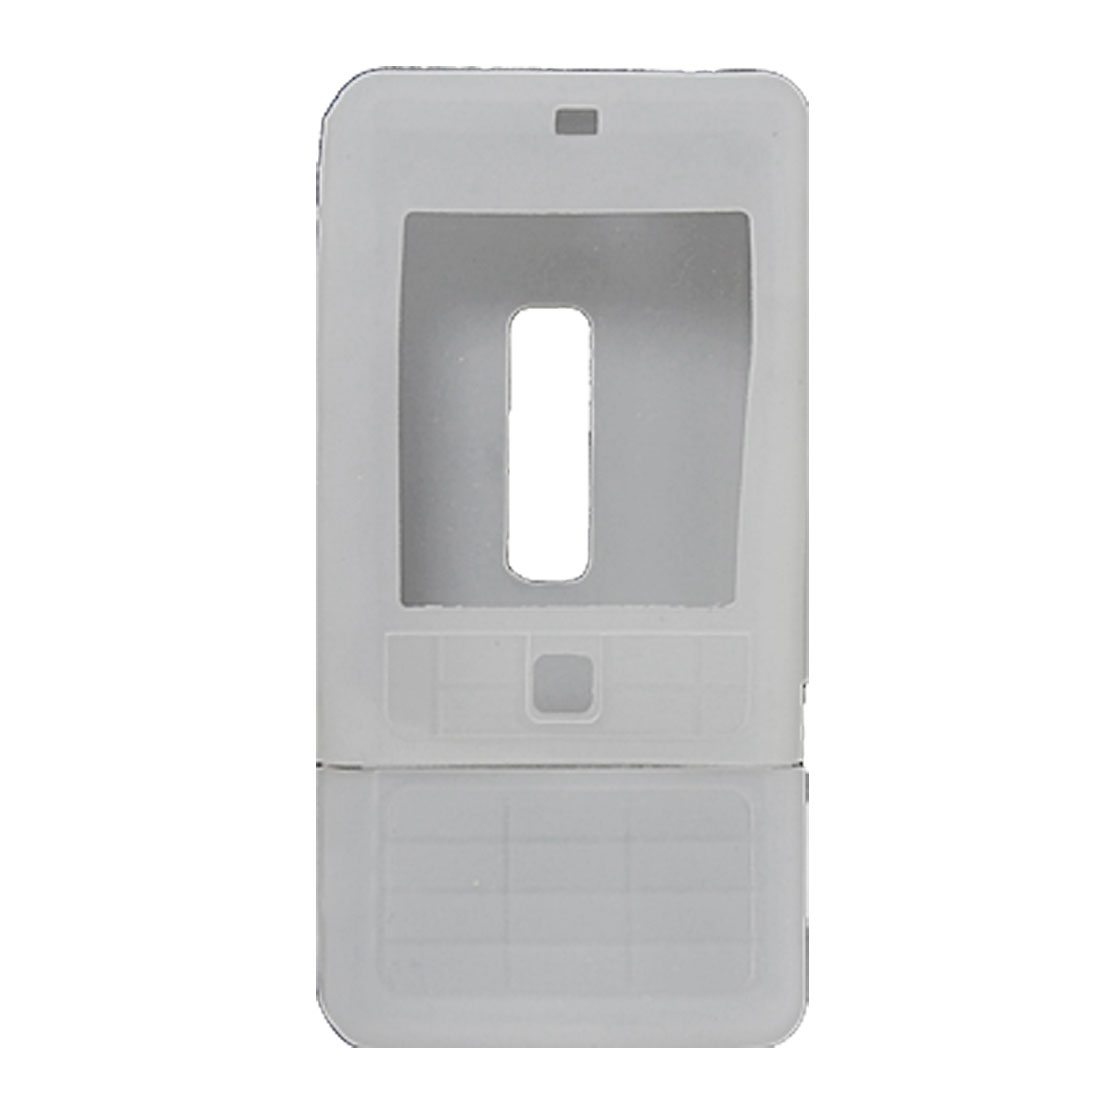 Clear White Case for NOKIA 3250